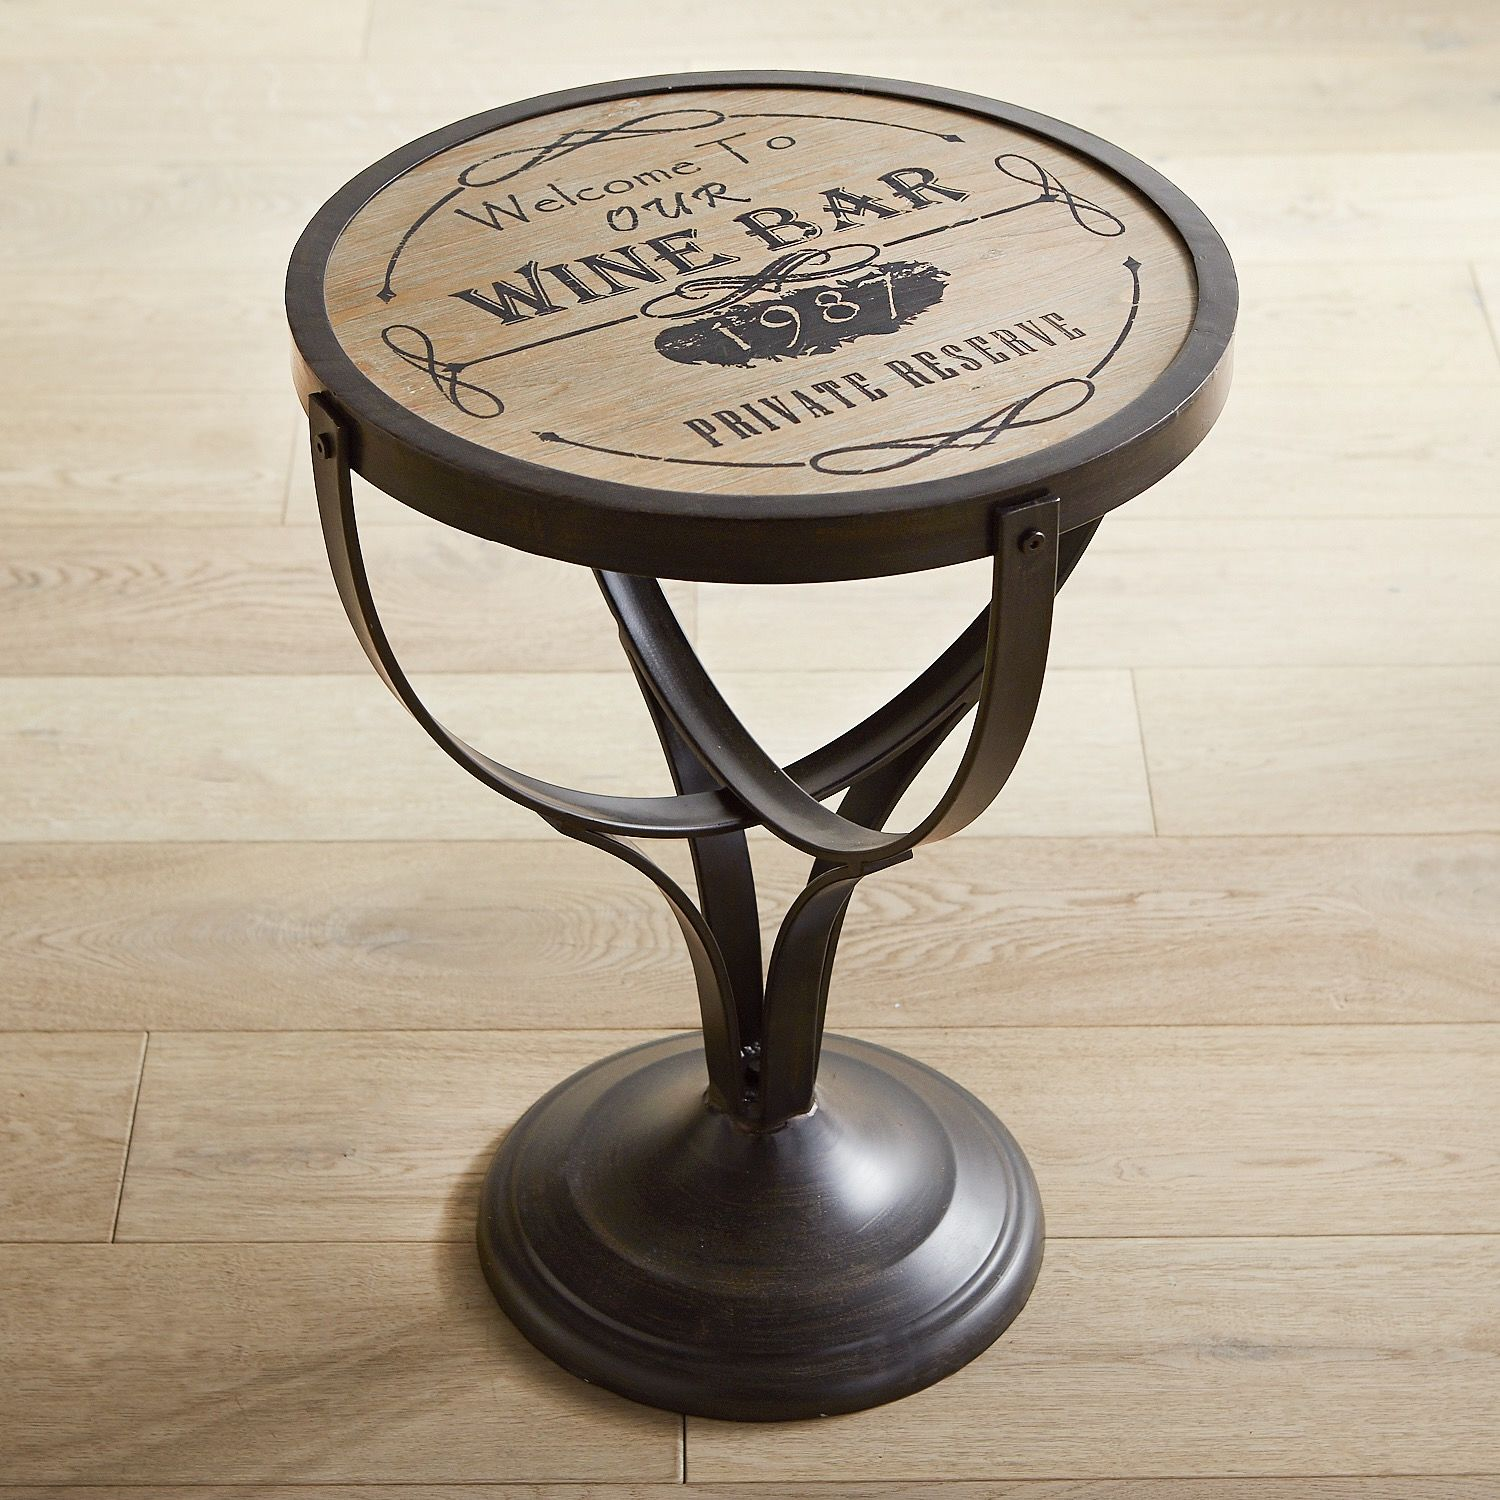 wine bar round accent table pier imports one side tables half height legs oval coffee with shelf contemporary bedroom lamps glass rack small dresser concrete wood home ornaments